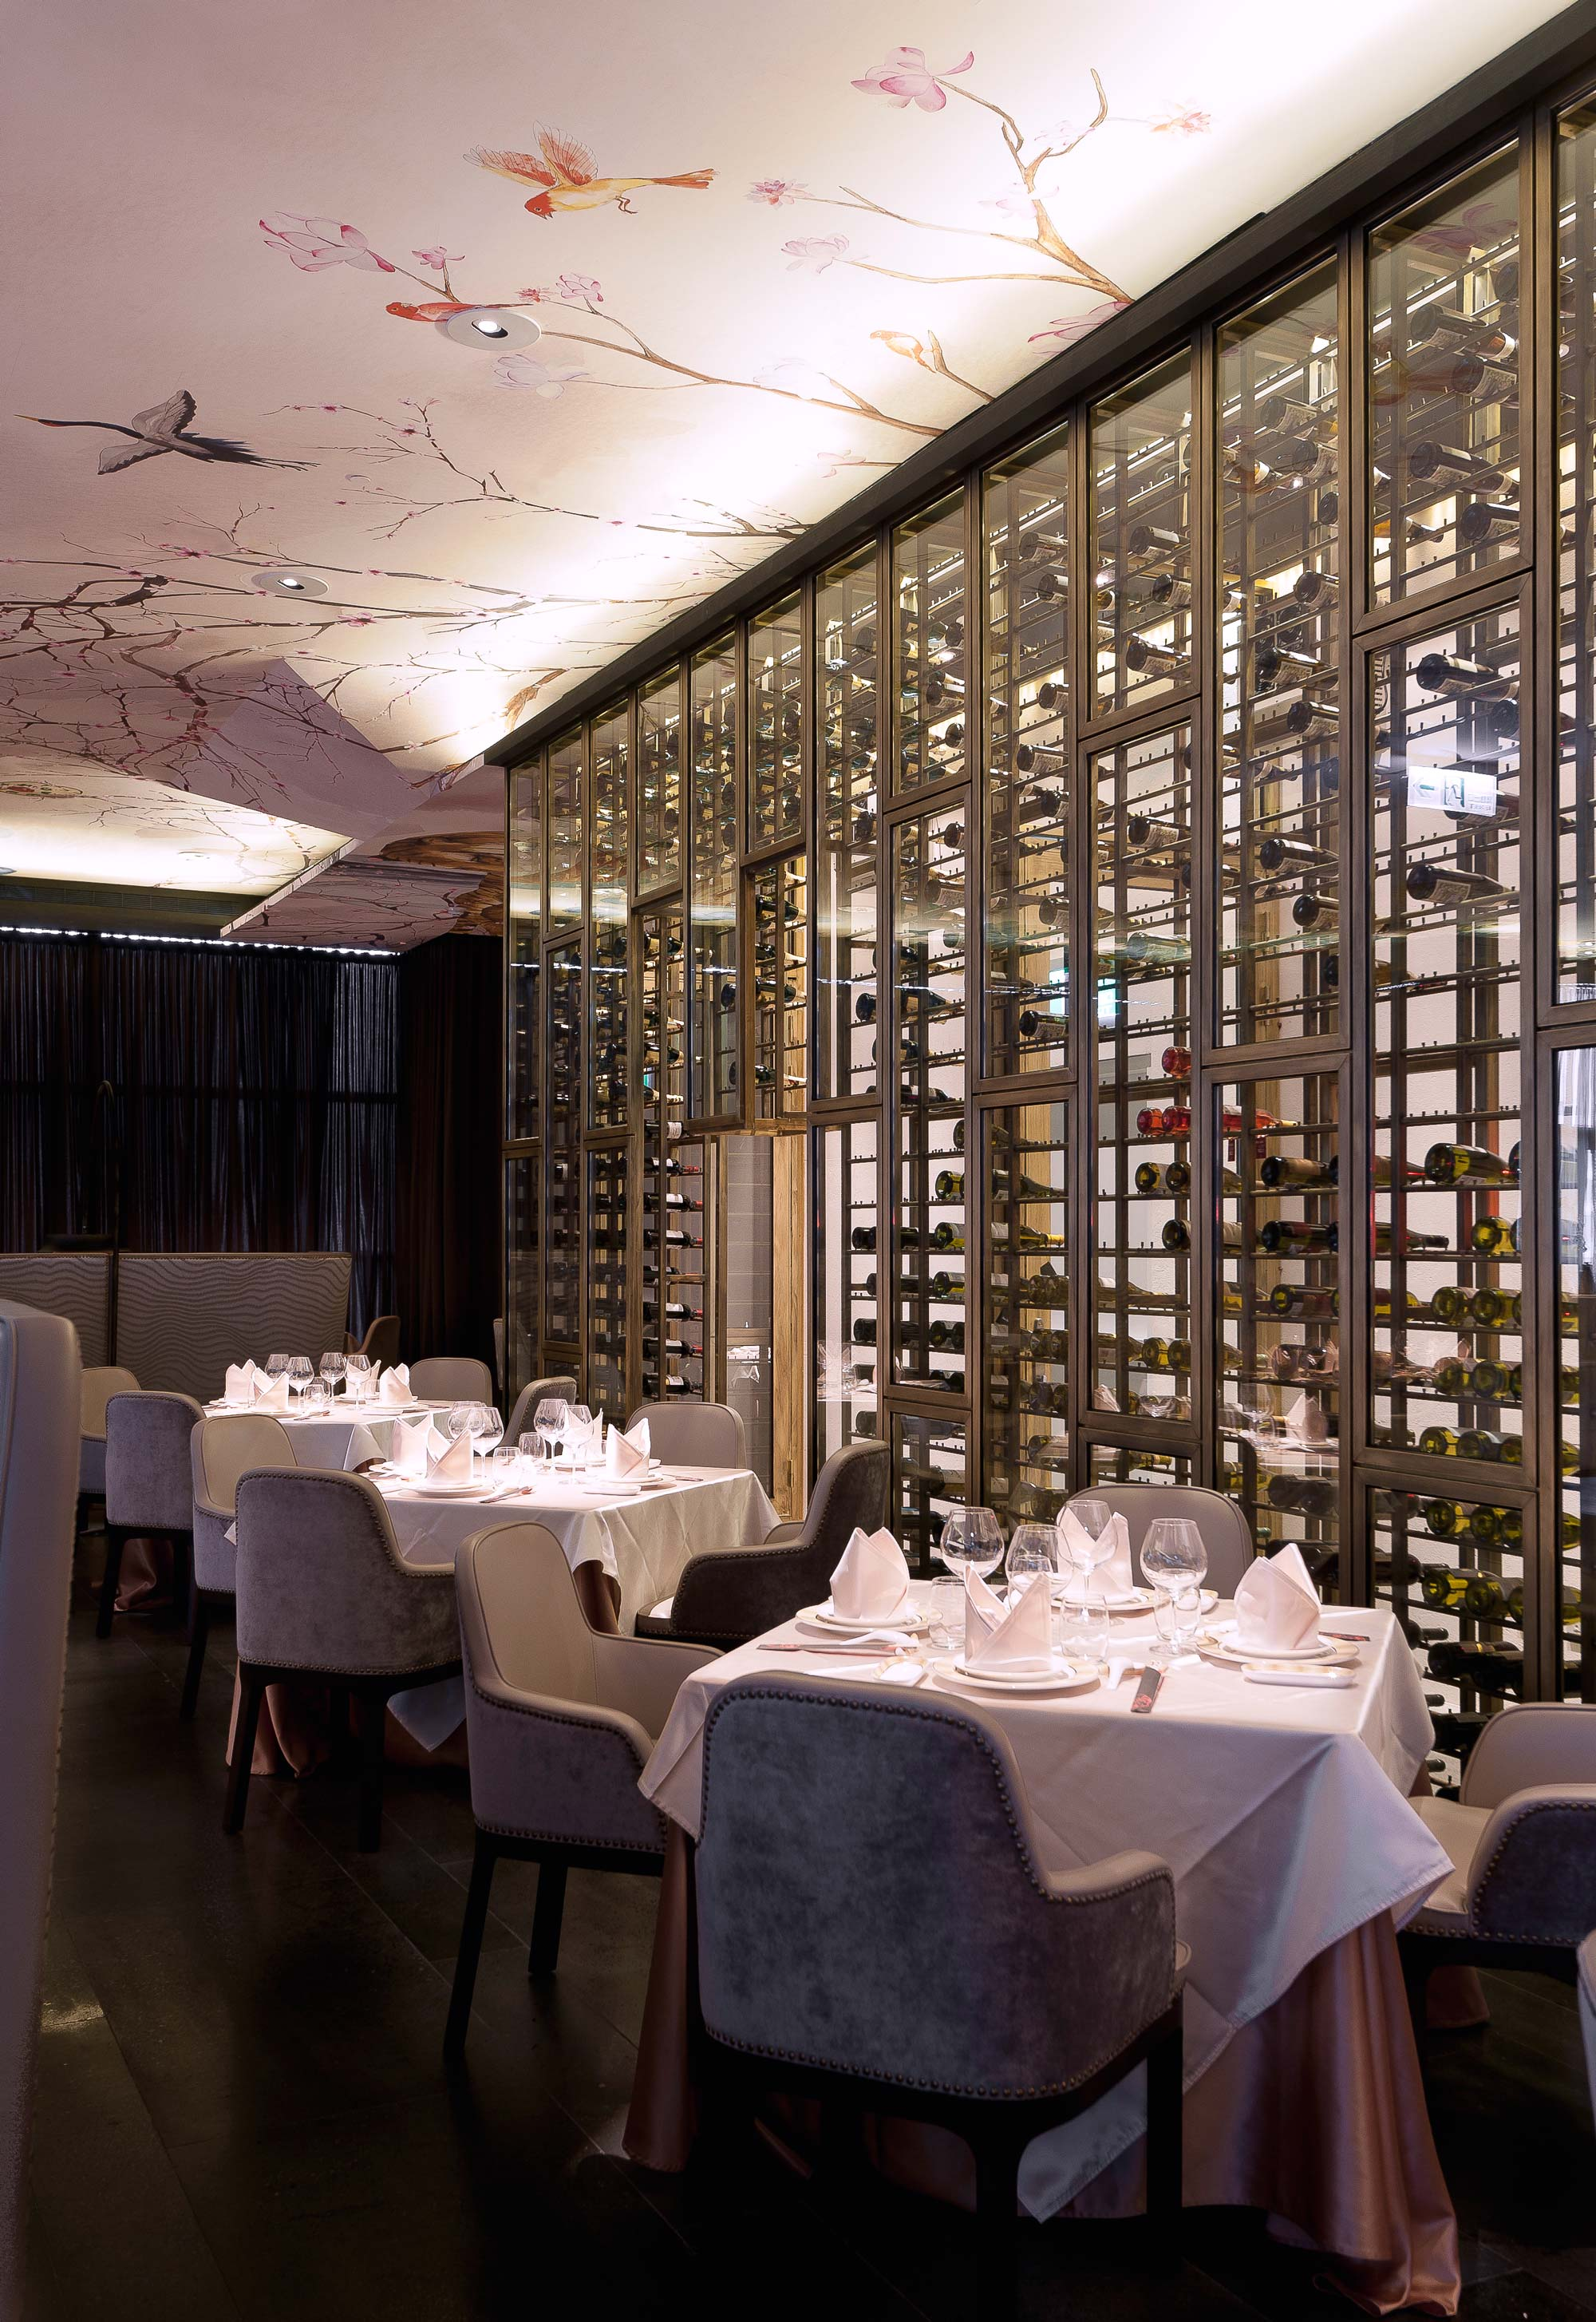 Restaurant interior featuring a wall-sized wine case, bespoke tables and chairs crowned with a China-inspired hand-painted artwork on the ceiling